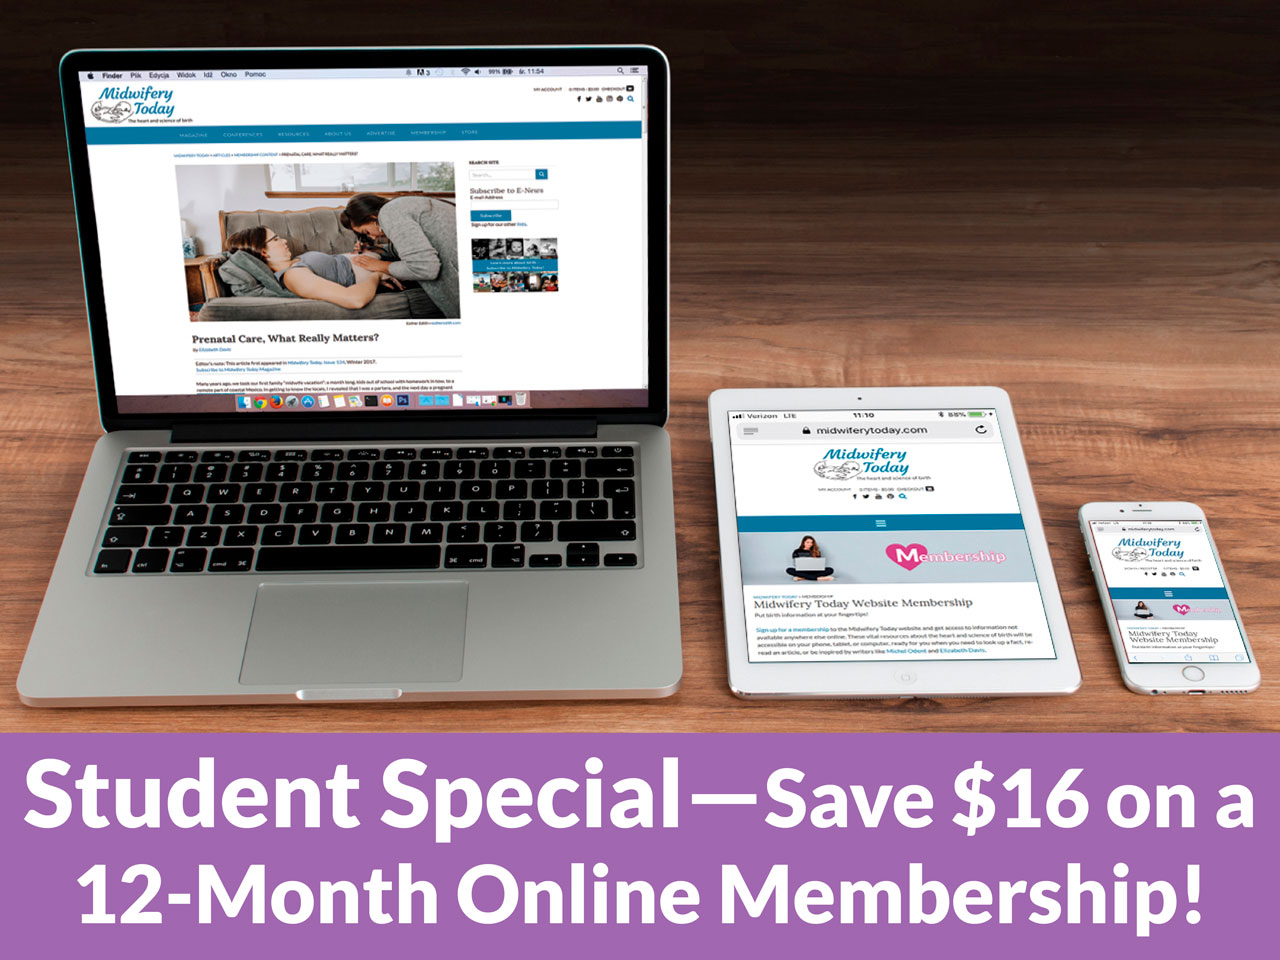 Students! Save $16 on a one-year Midwifery Today Online Membership!